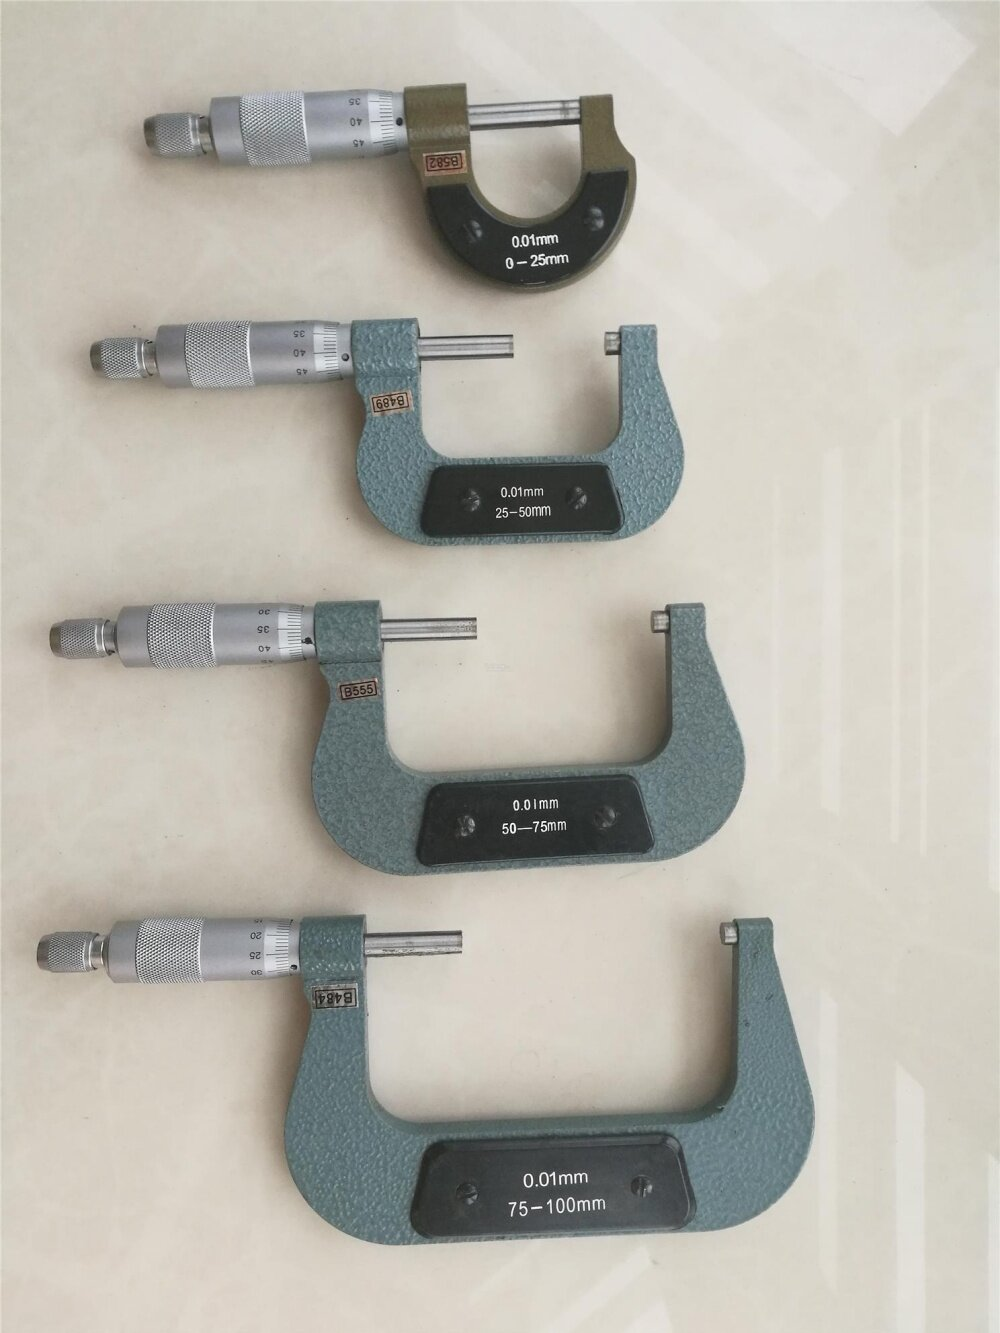 0-25mm Outside Micrometer / External Micrometer